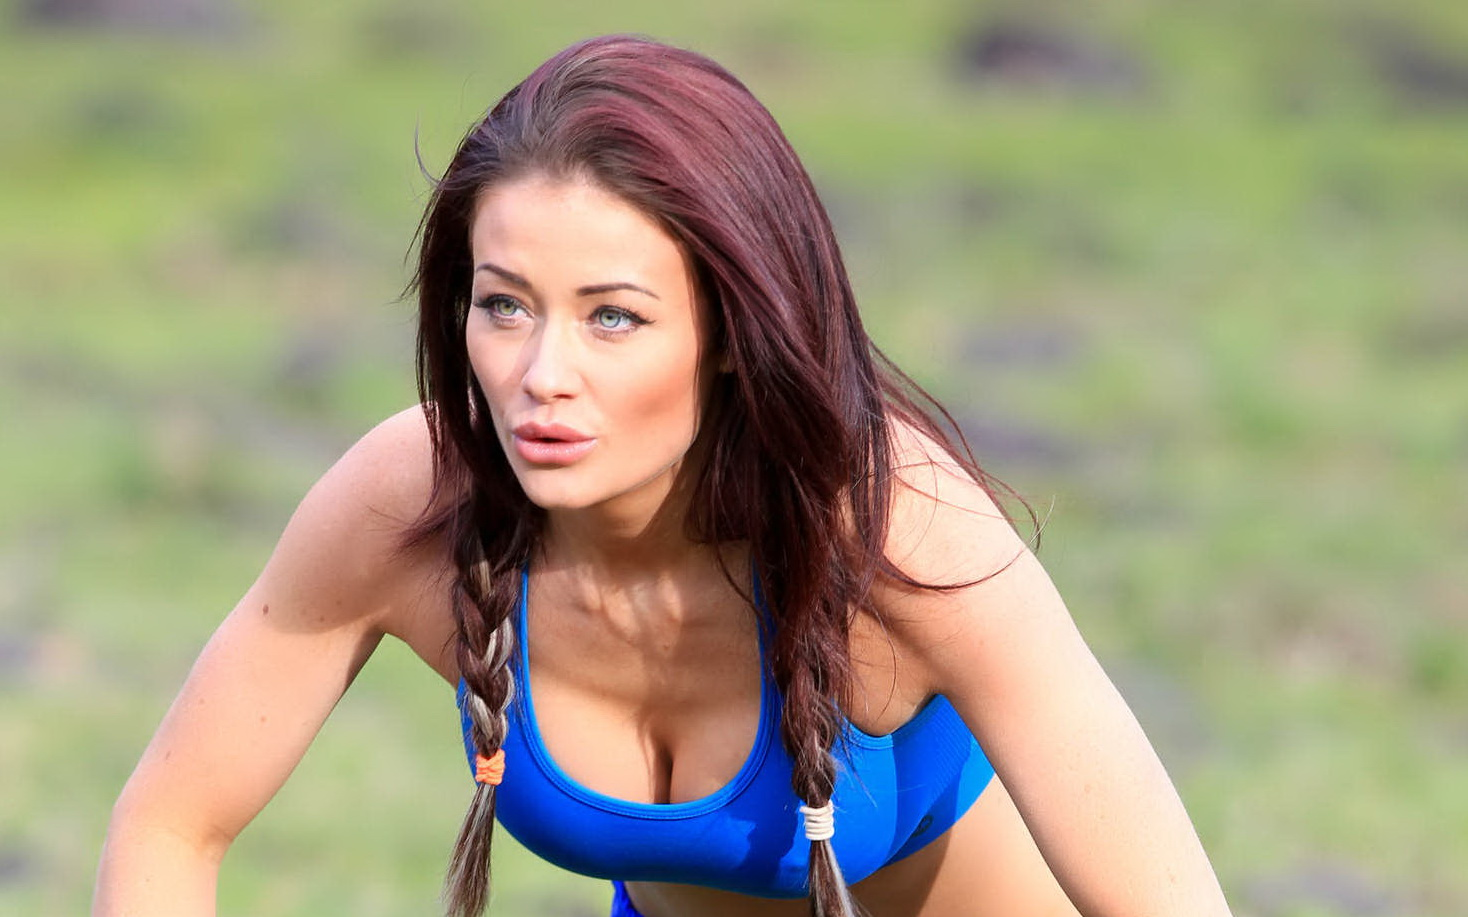 jess-impiazzi-nipple-pokes-while-working-out-14